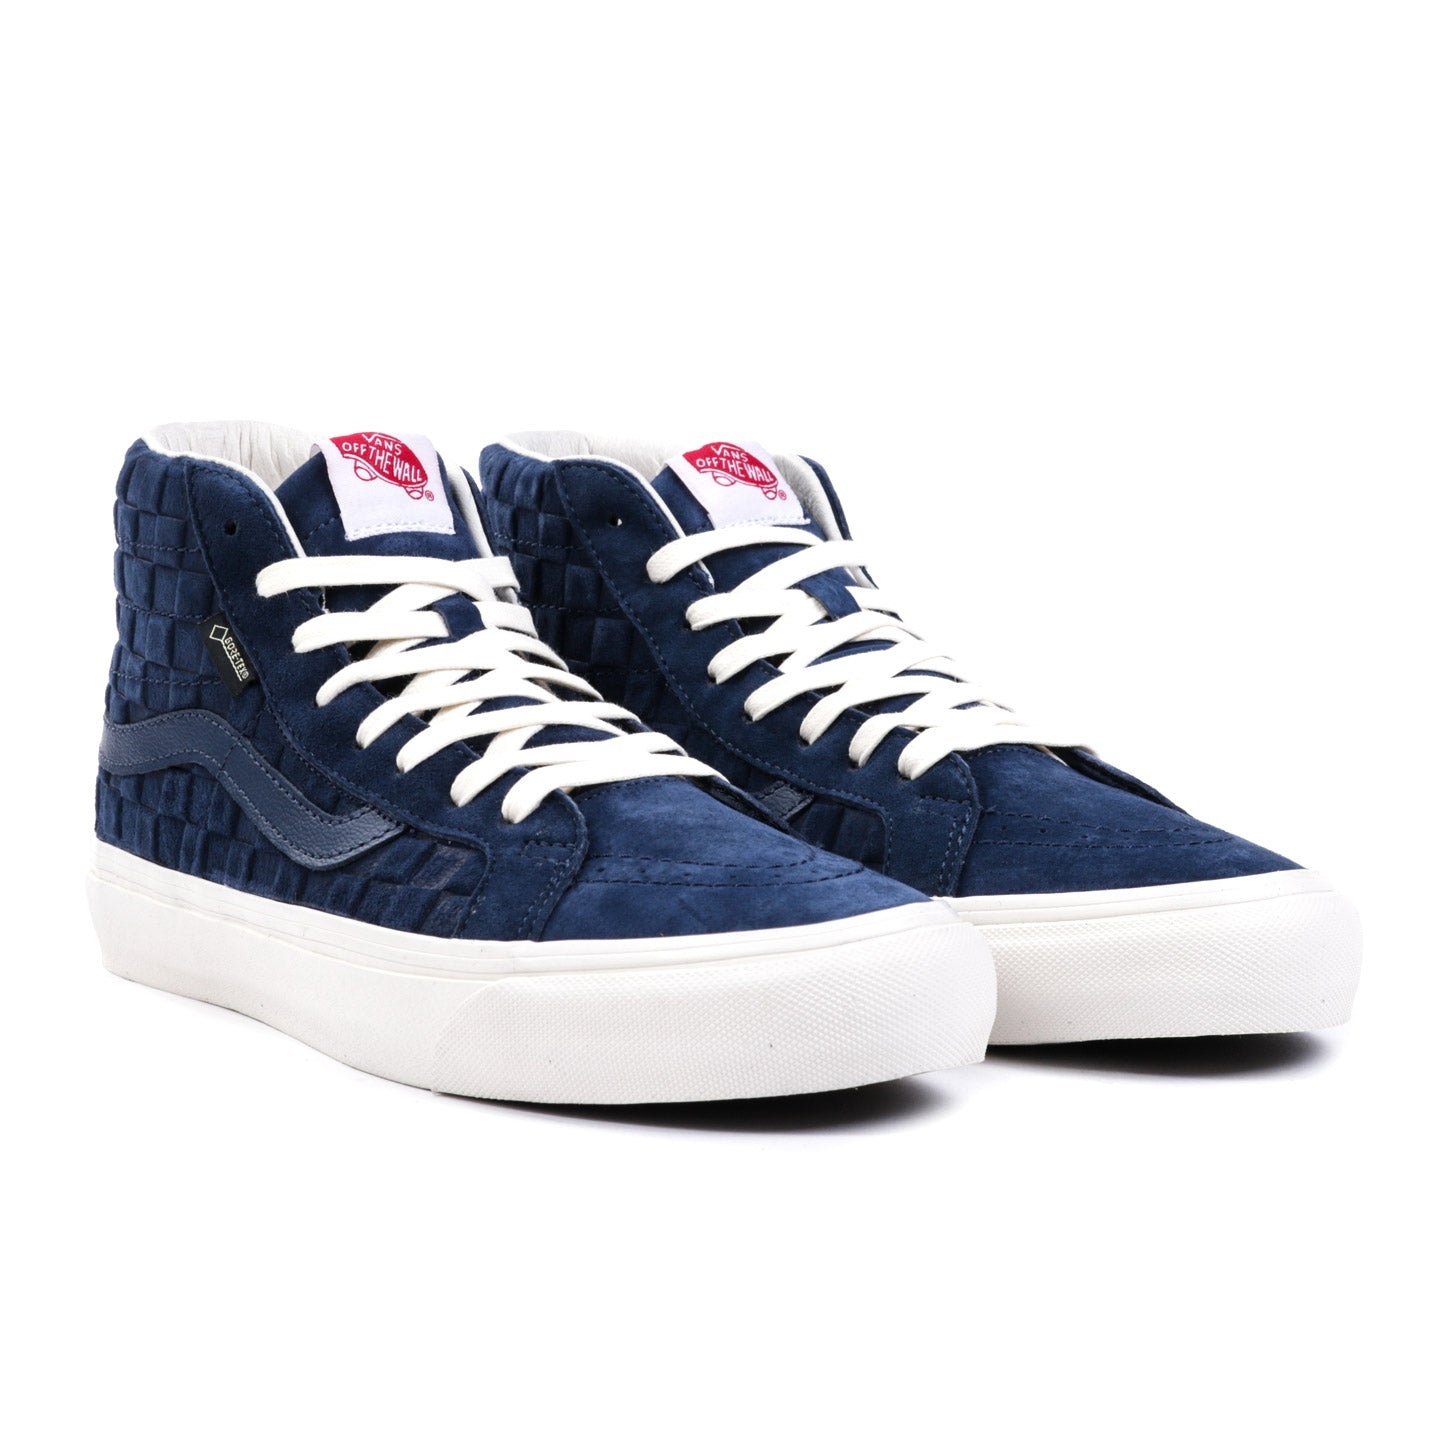 VAULT BY VANS SK8-HI GORE-TEX LX CHECKERBOARD DRESS BLUES